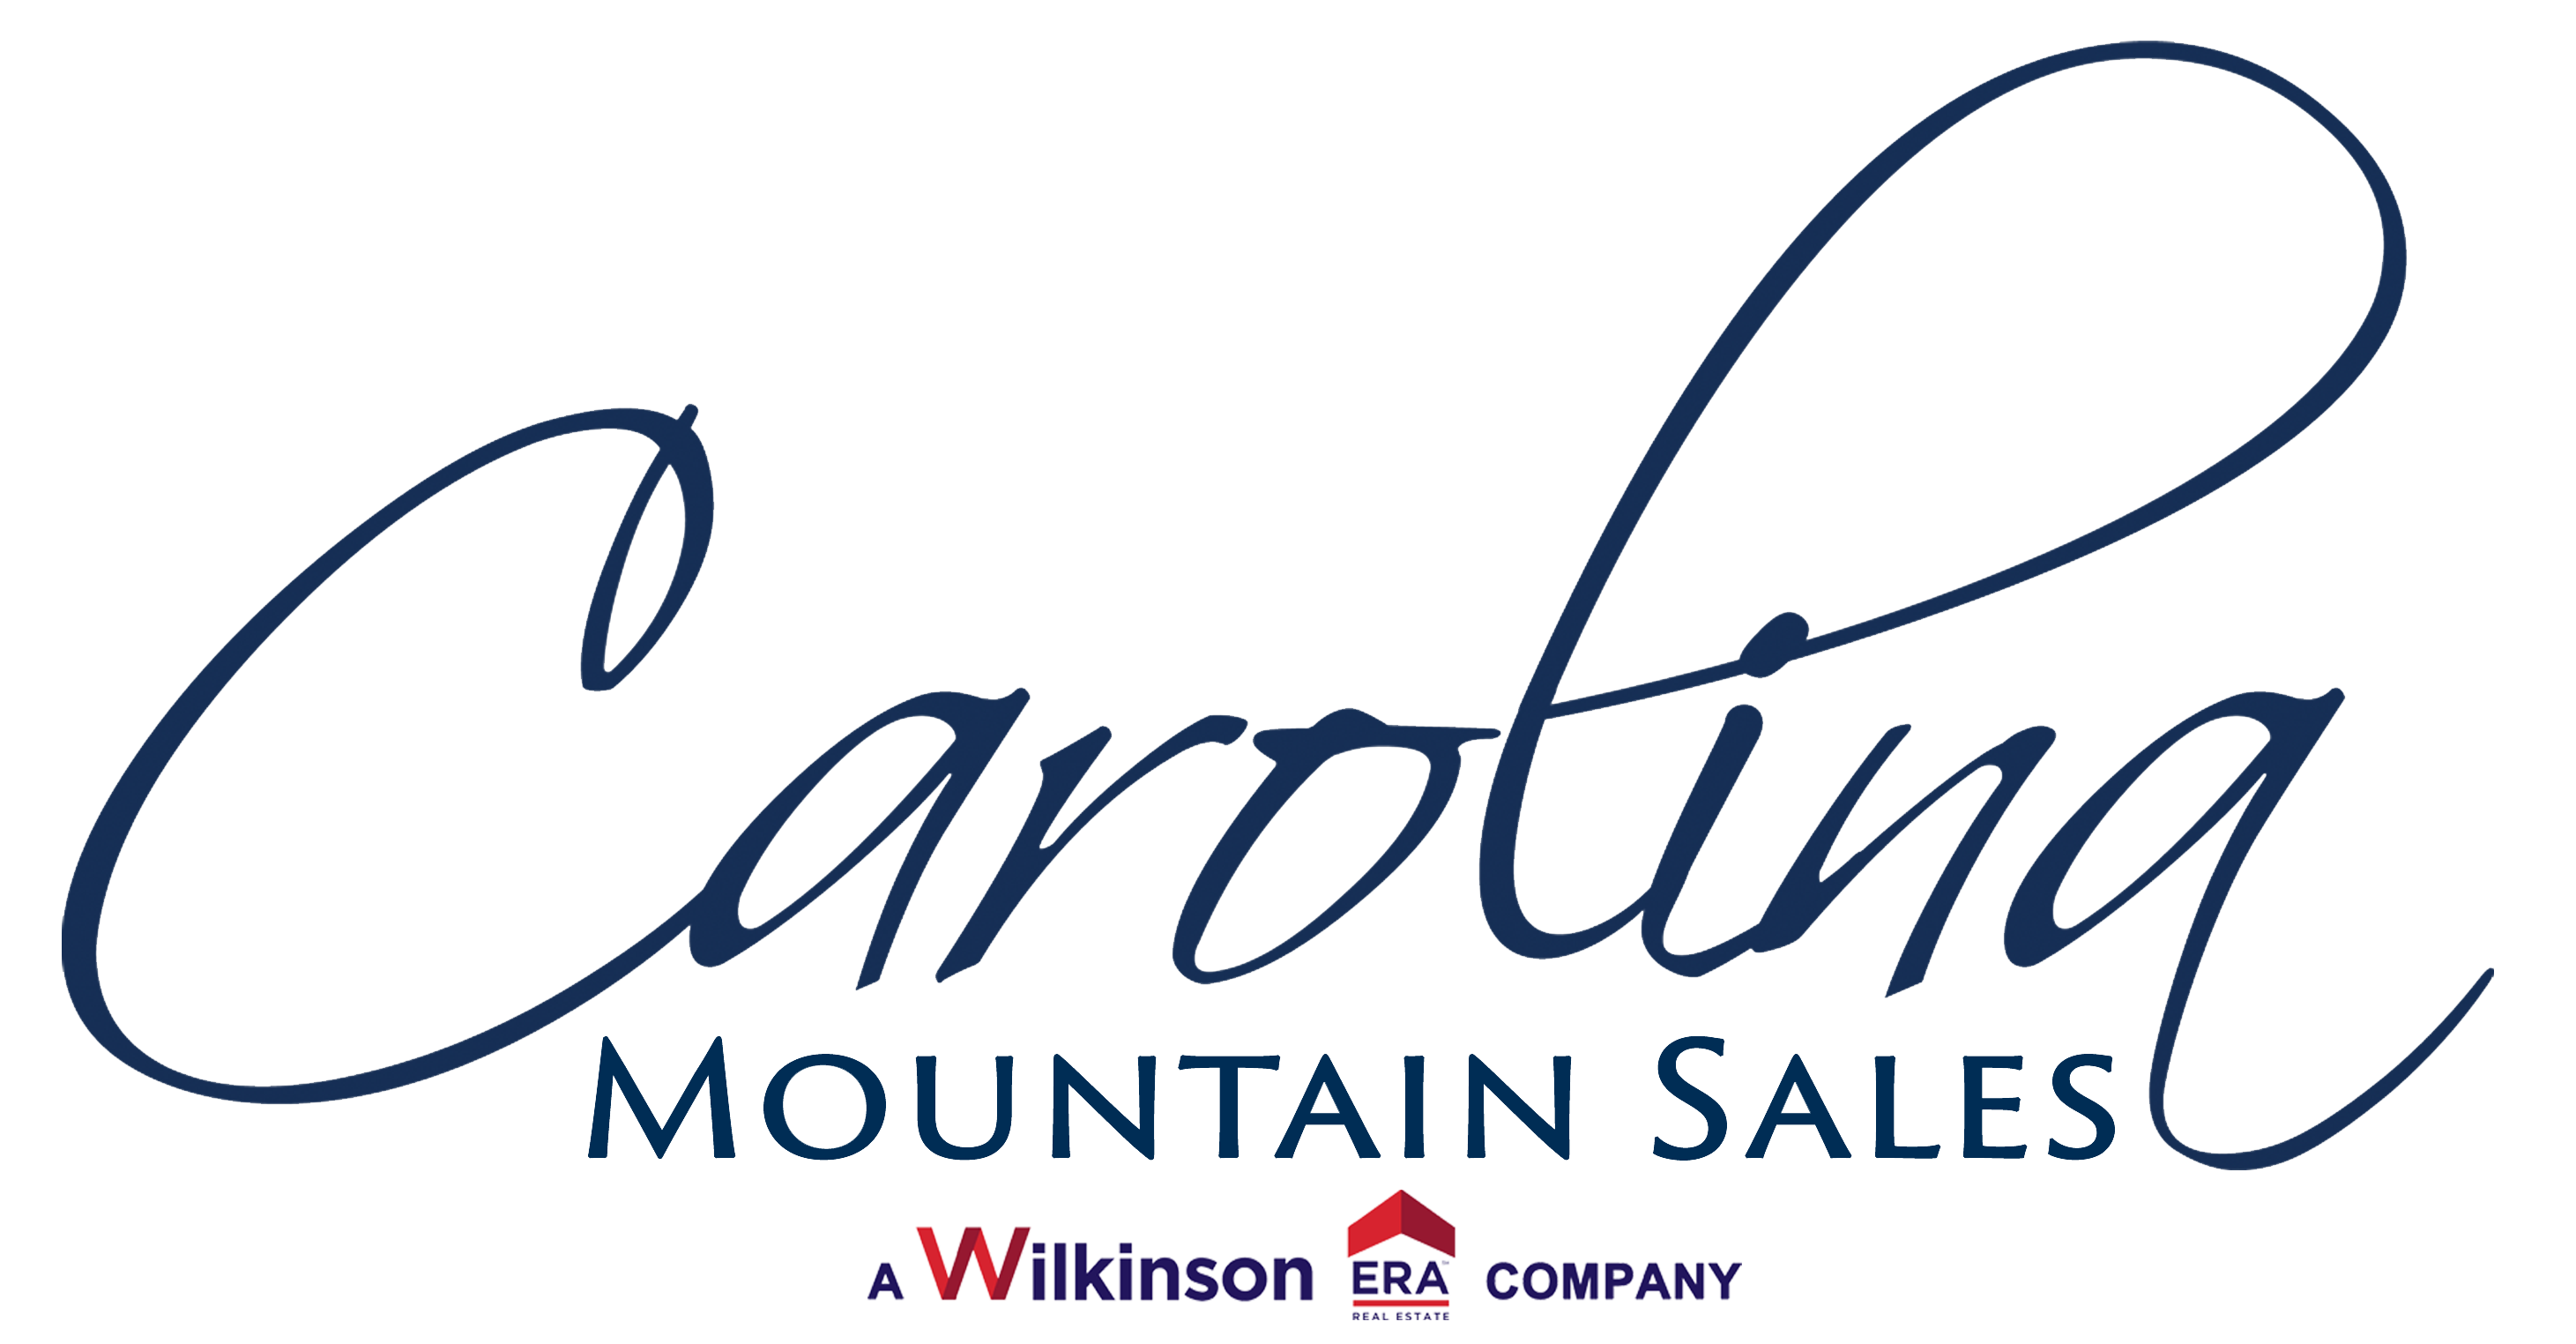 joincarolinamountainsales